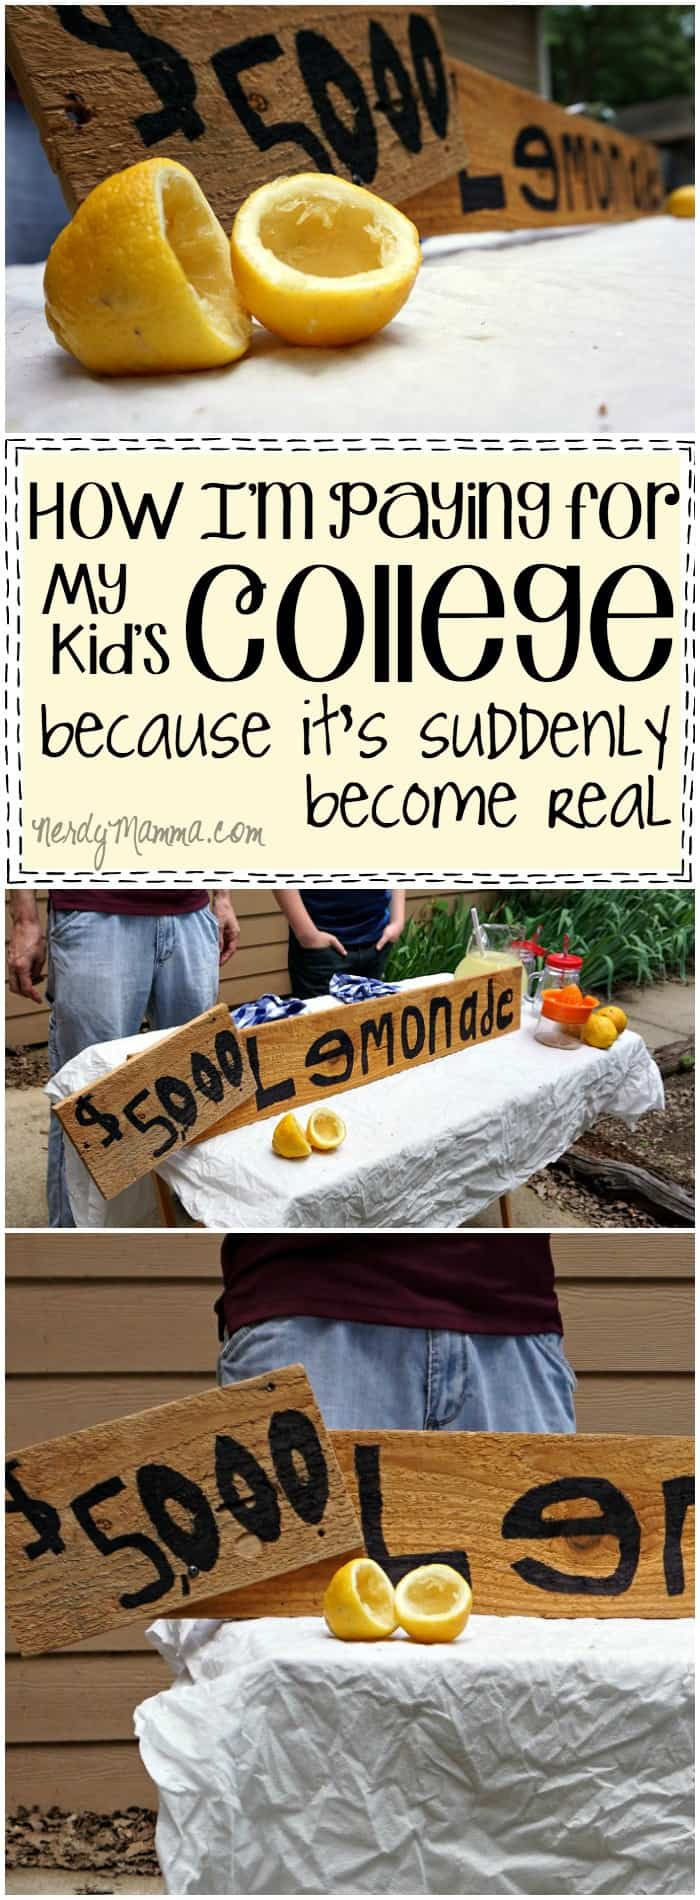 I love this mom's thoughts on how she's planning to pay for college. It does creep-up on you! LOL!